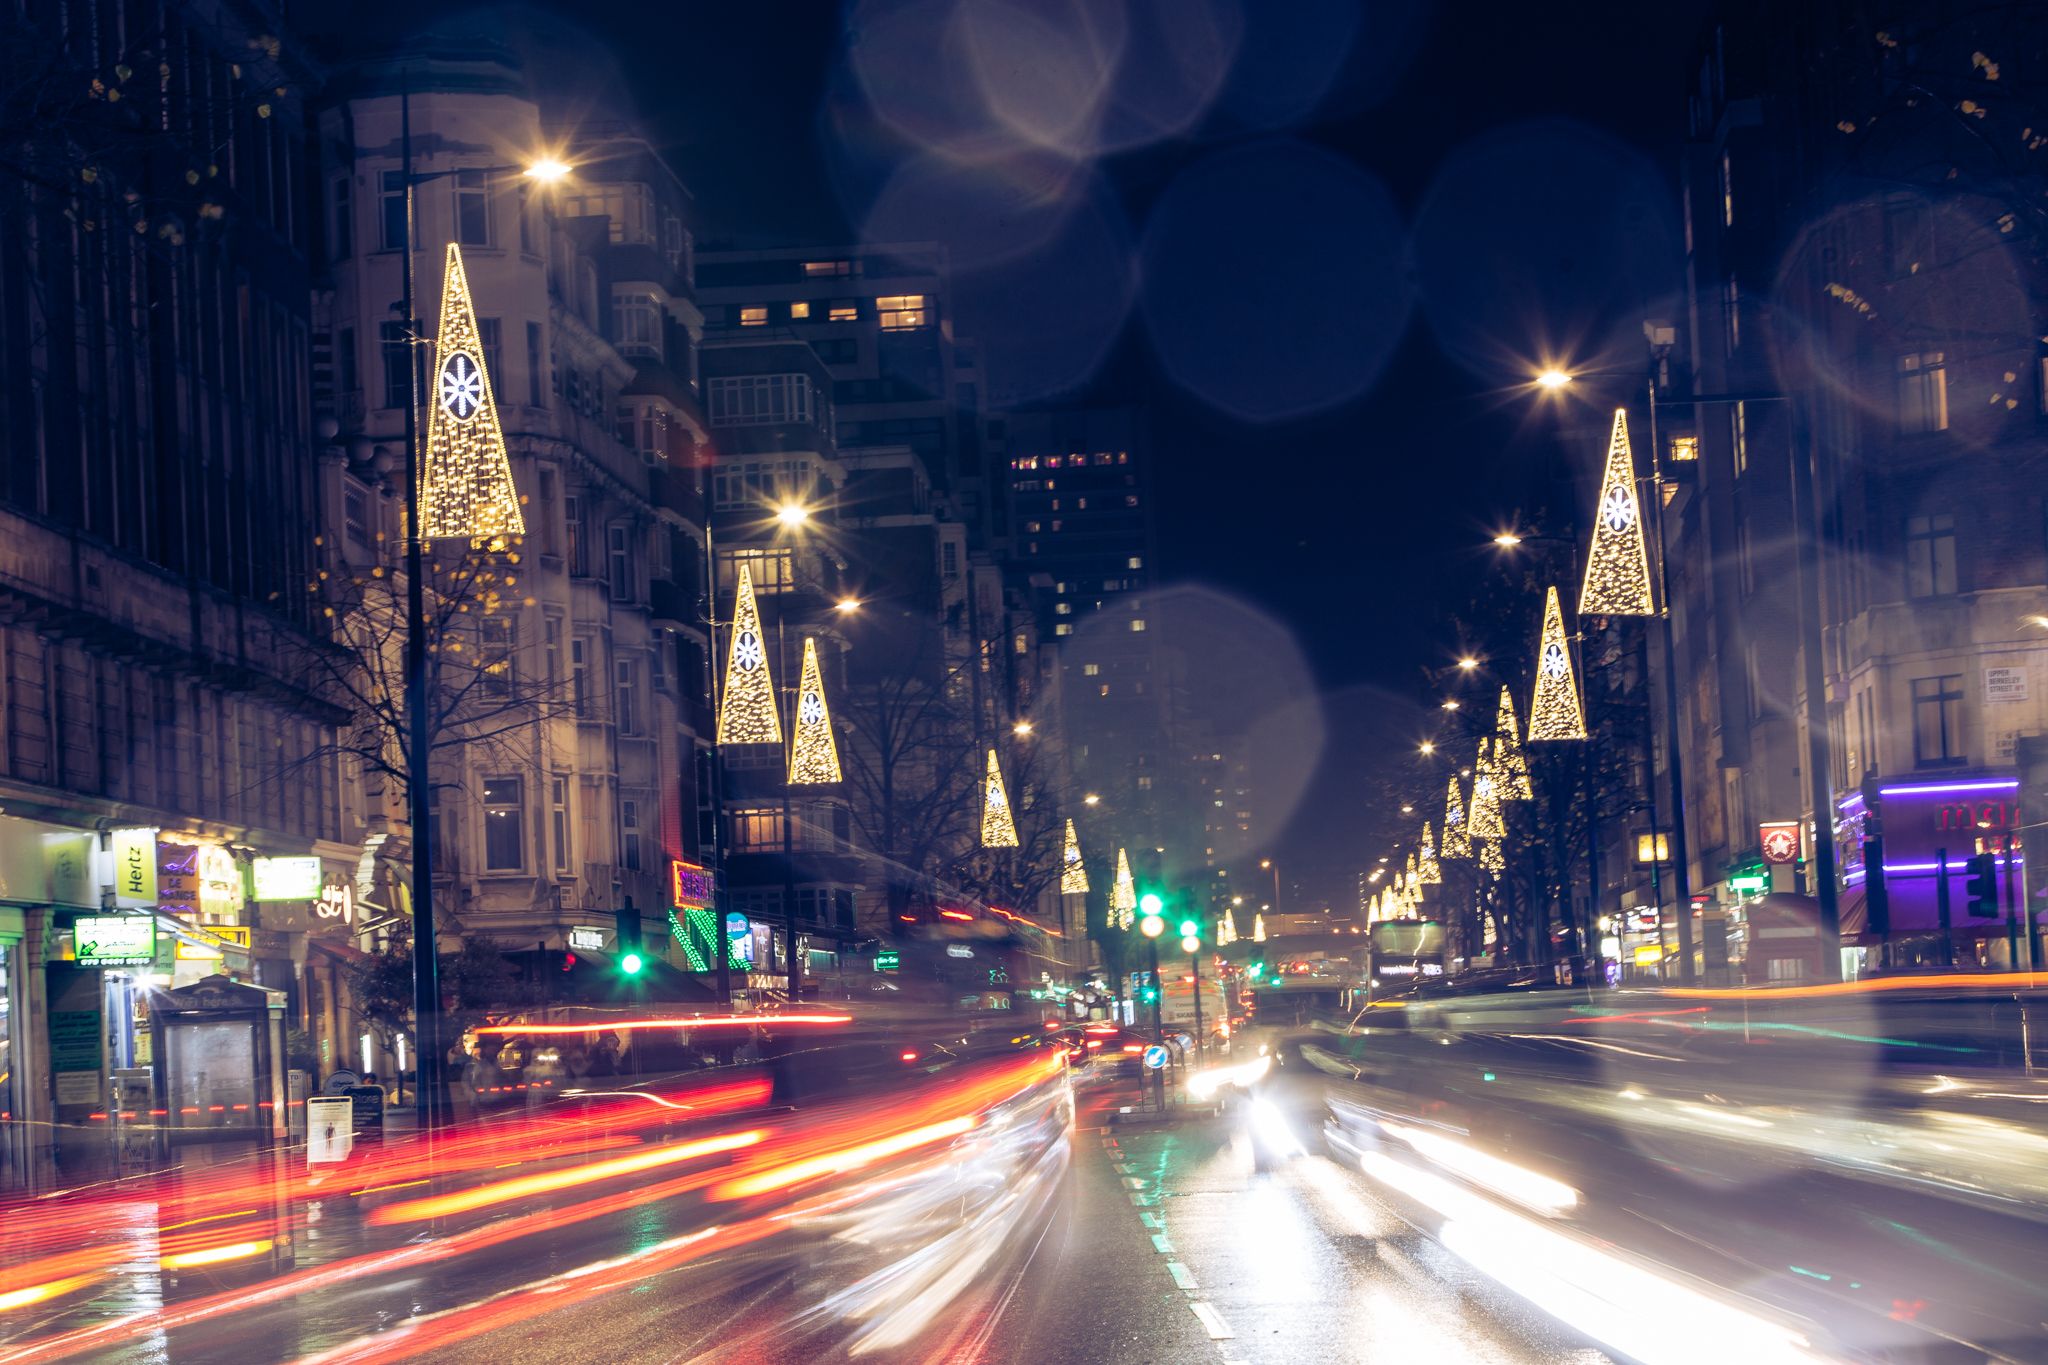 It's merry and bright with Edgware Road's Christmas Lights!